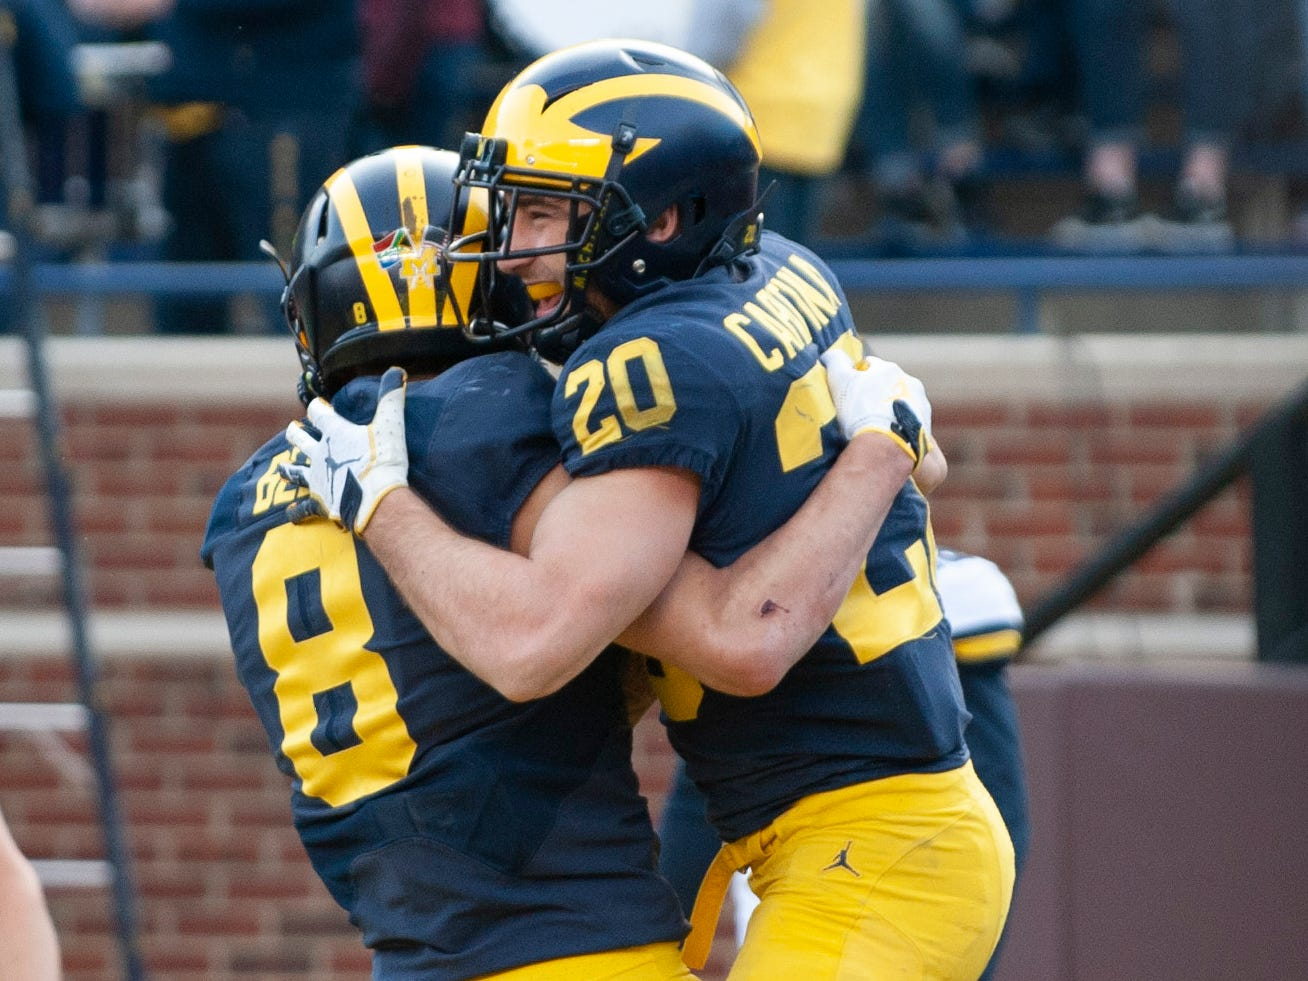 Michigan RB Nicholas Capatina gets a lift from teammate Ronnie Bell (8) after scoring a rushing touchdown.